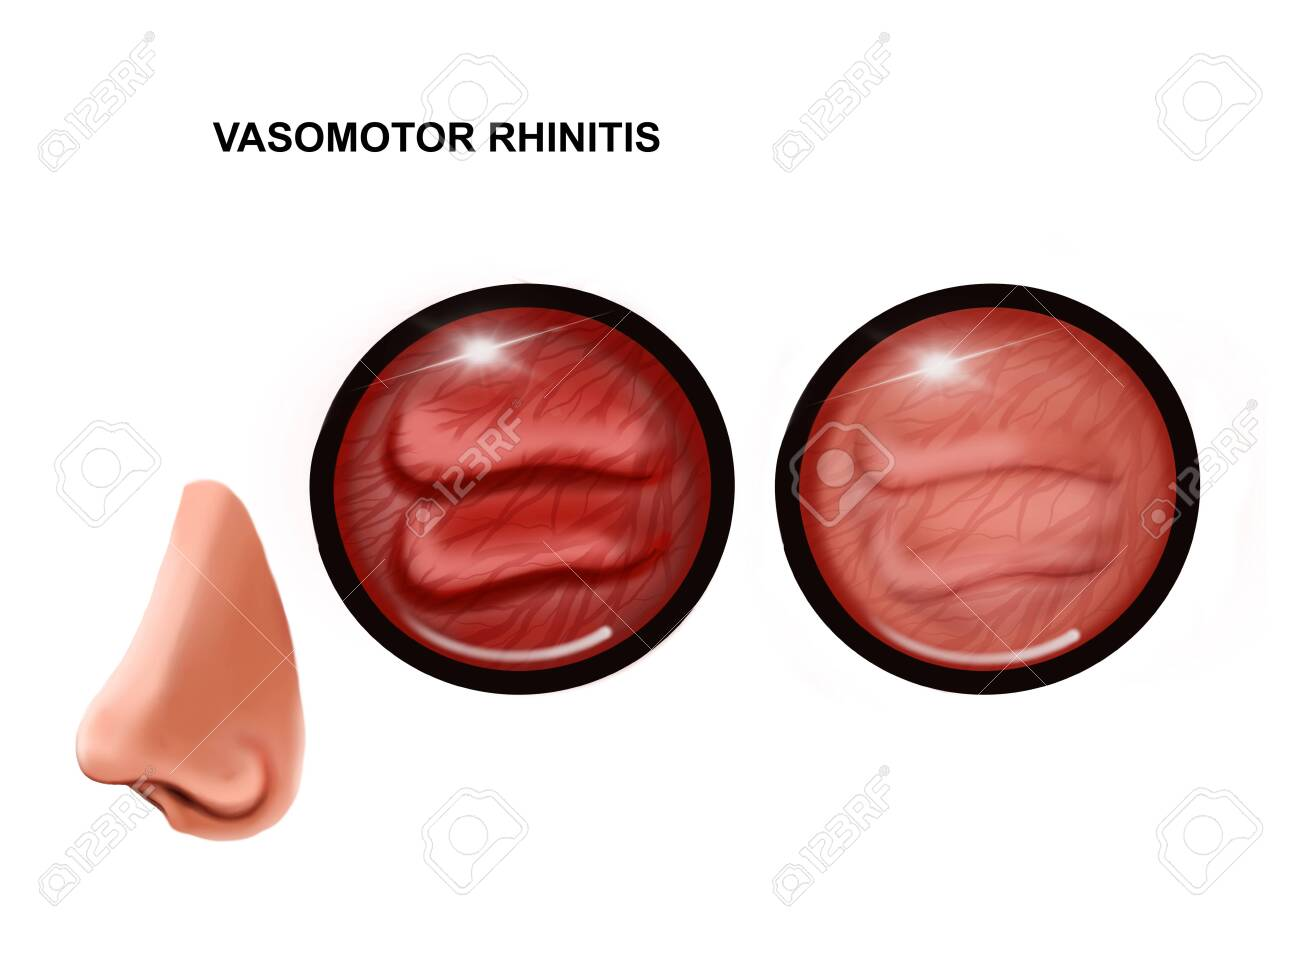 illustration of vasomotor rhinitis of the nasal mucosa. healthy and inflamed - 138142251